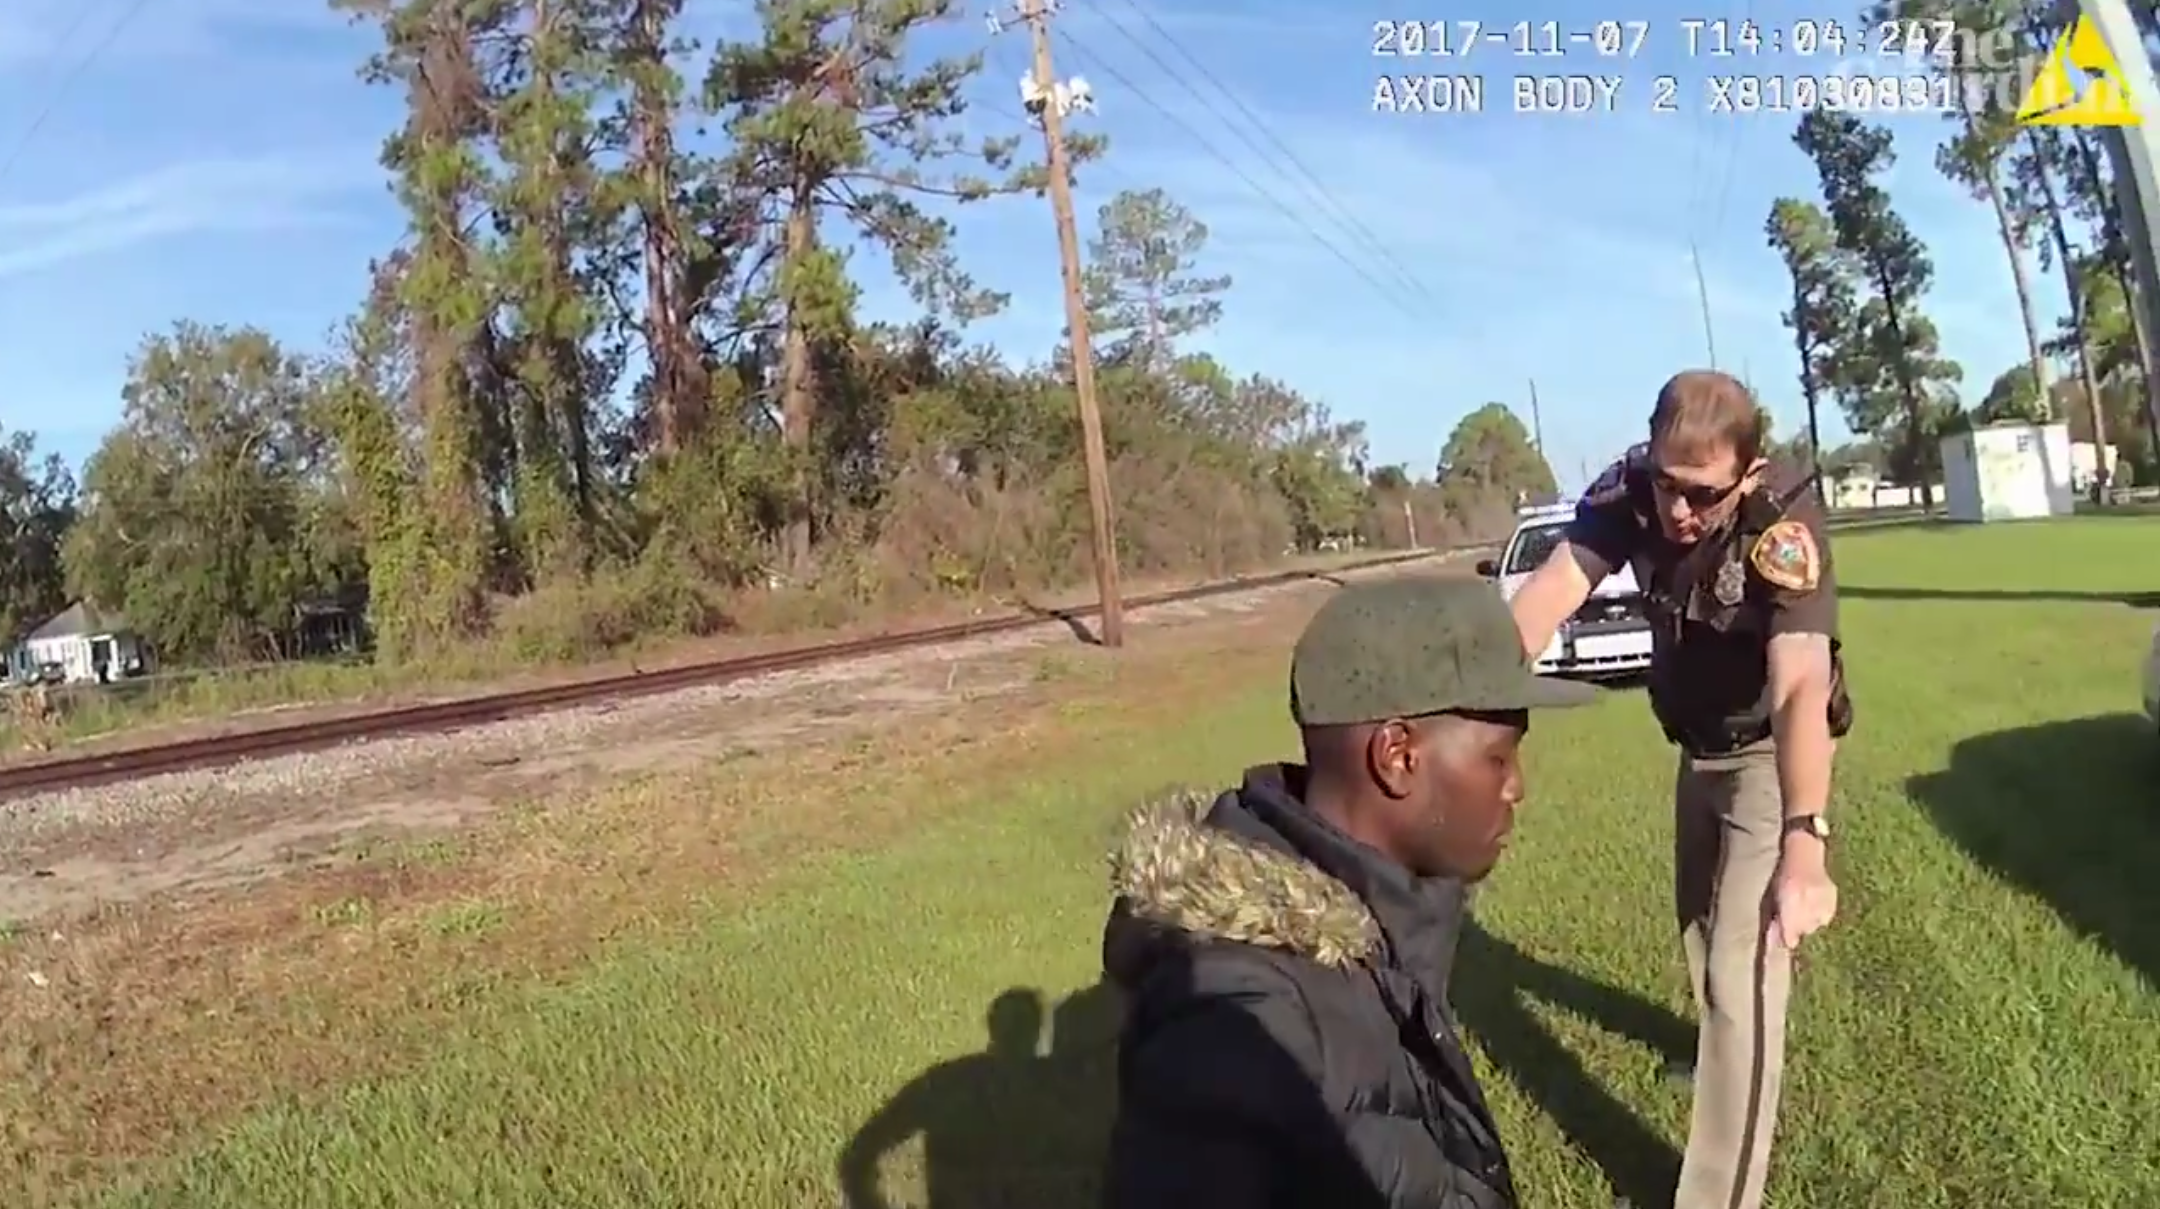 Police officer brandishing a taser while Ahmaud Arbery is on the ground. (Screenshot/The Guardian)